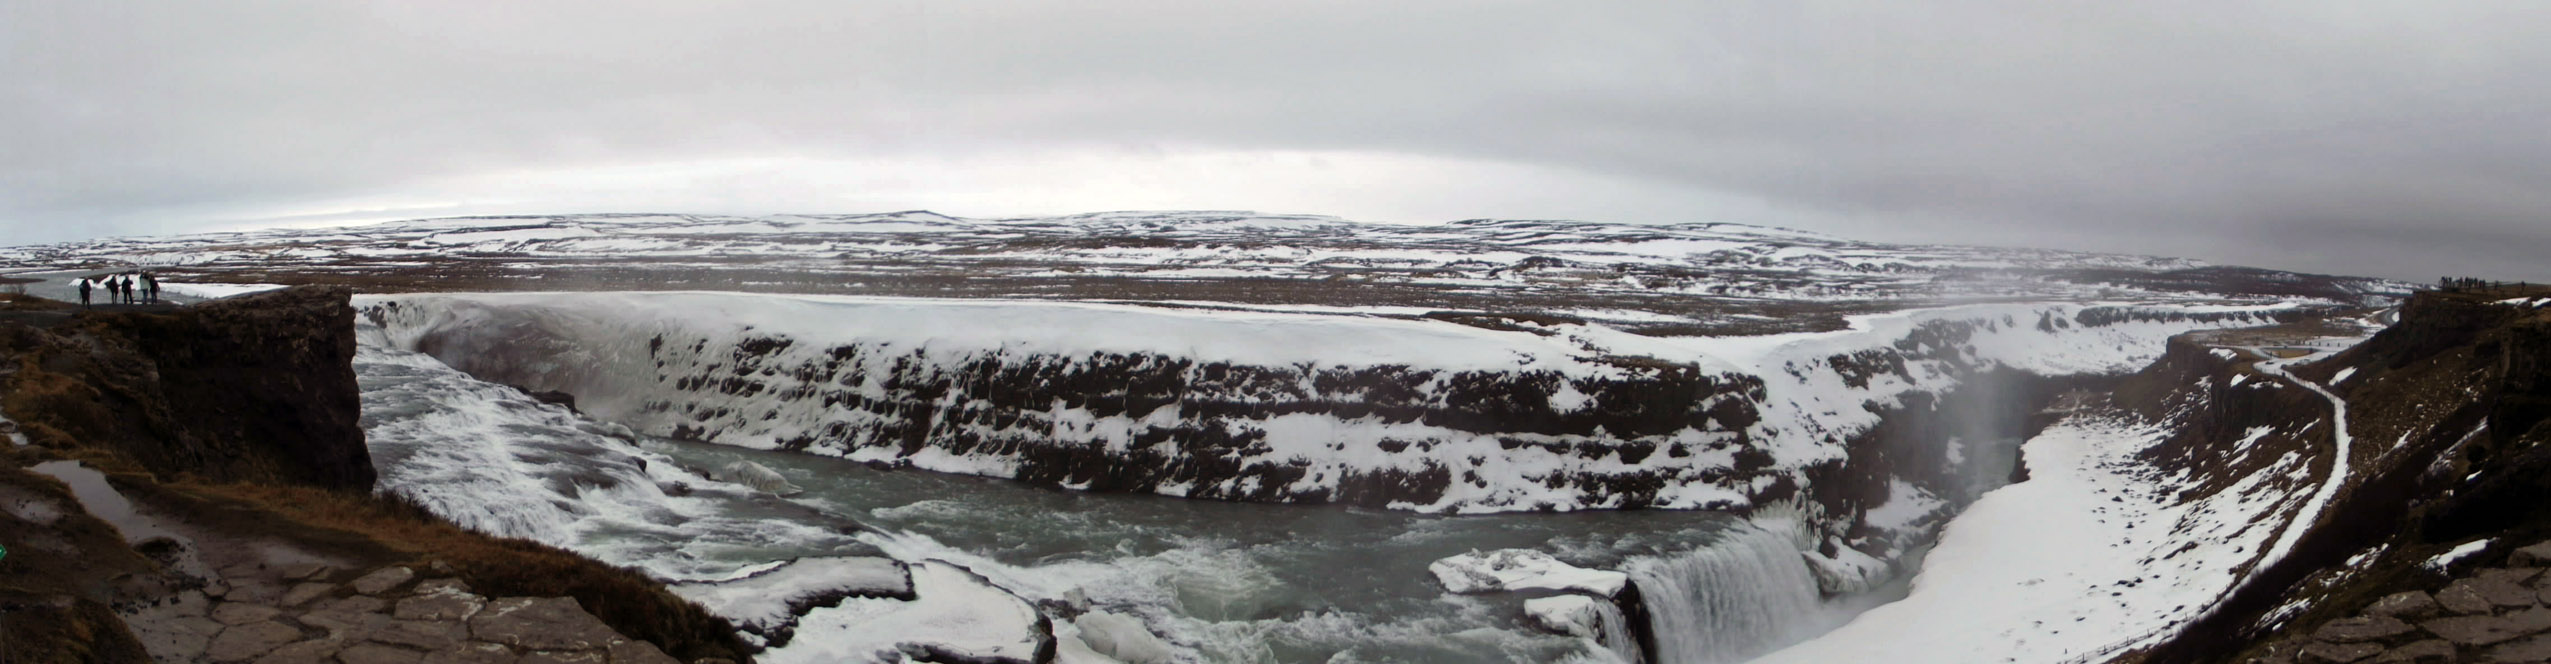 Panorama of large waterfall in snowy landscape